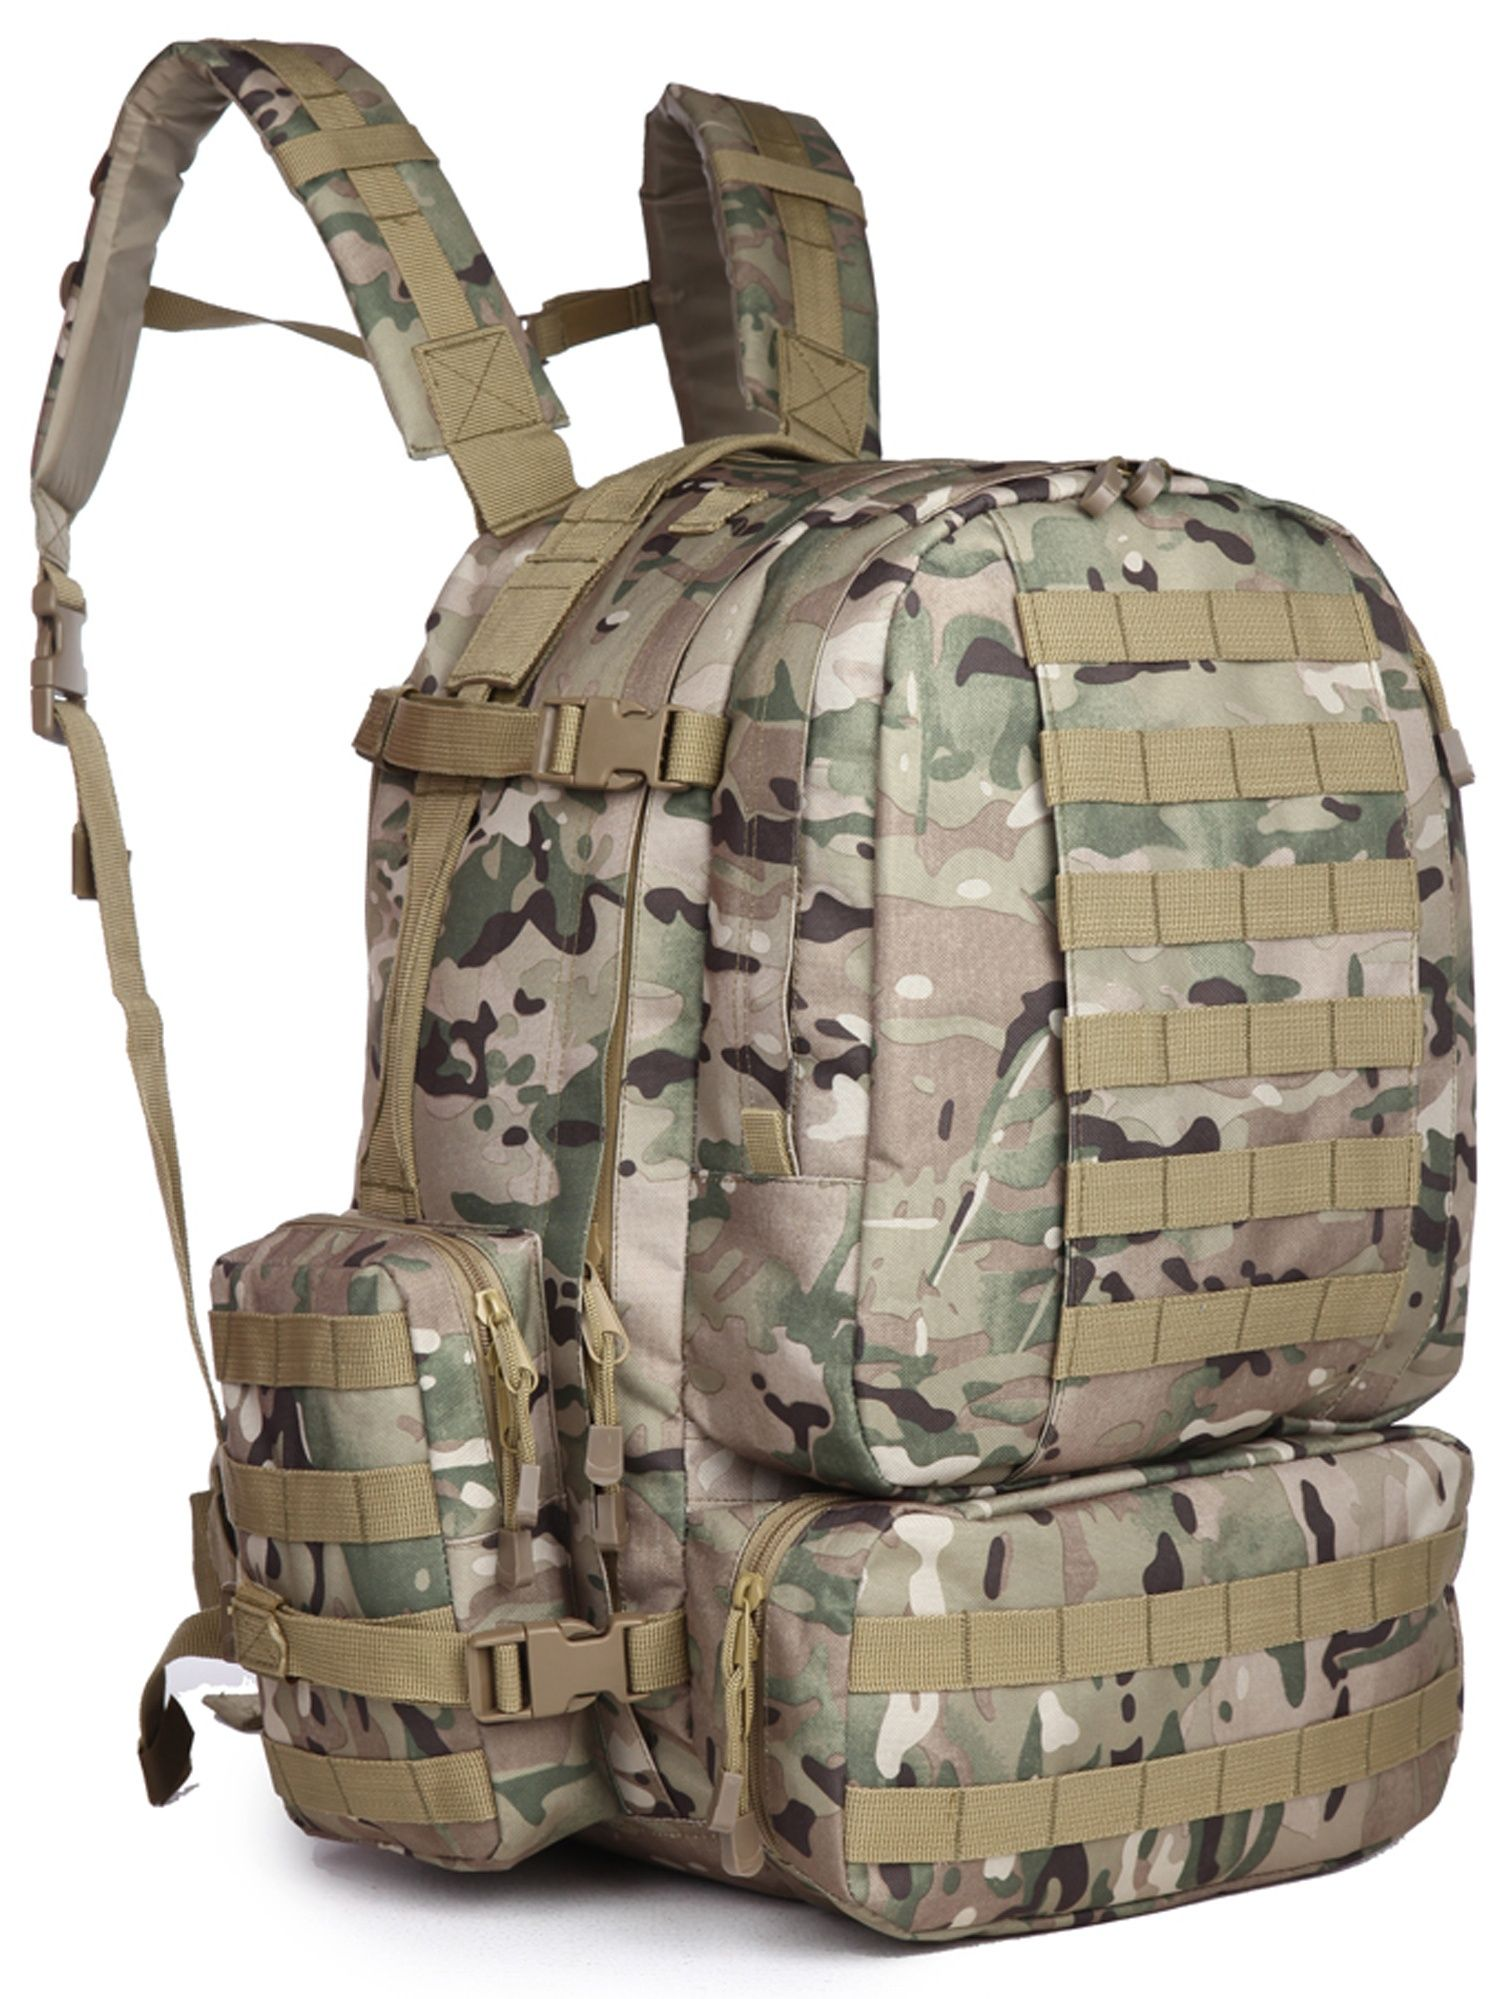 f851bd8b5d Military Rucksacks Tactical Molle Backpack Big 50-60L Camping Hiking  Trekking assault 3-days Sport Outdoor Travel Bag Big